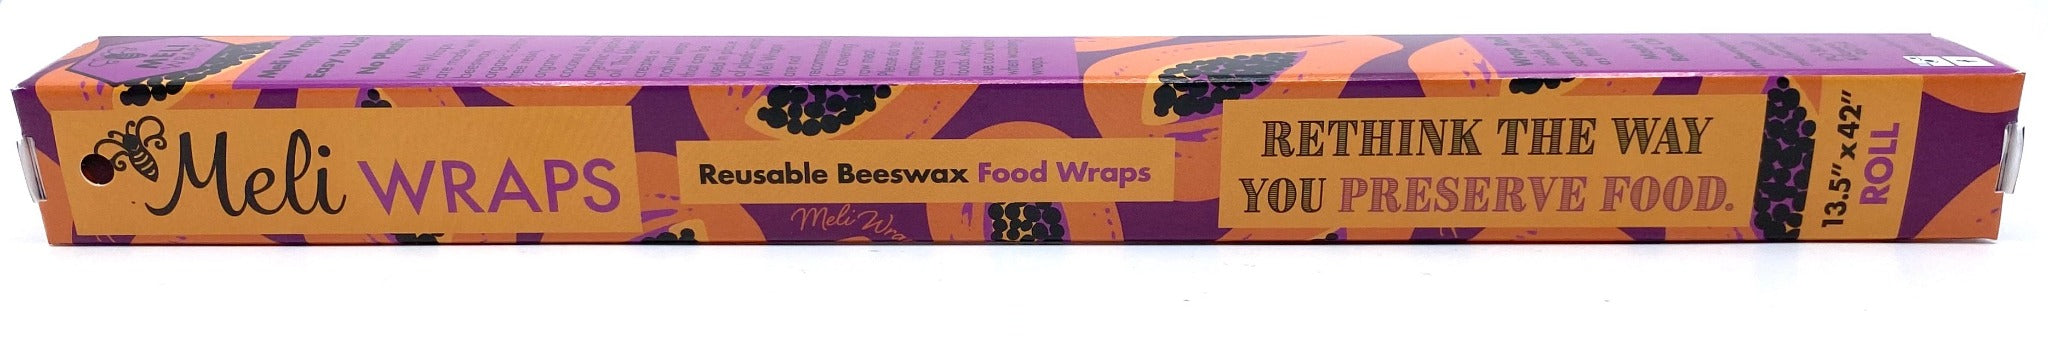 Meli Wraps Beeswax Wraps photo of a bulk roll of beeswax wraps in purple papaya print